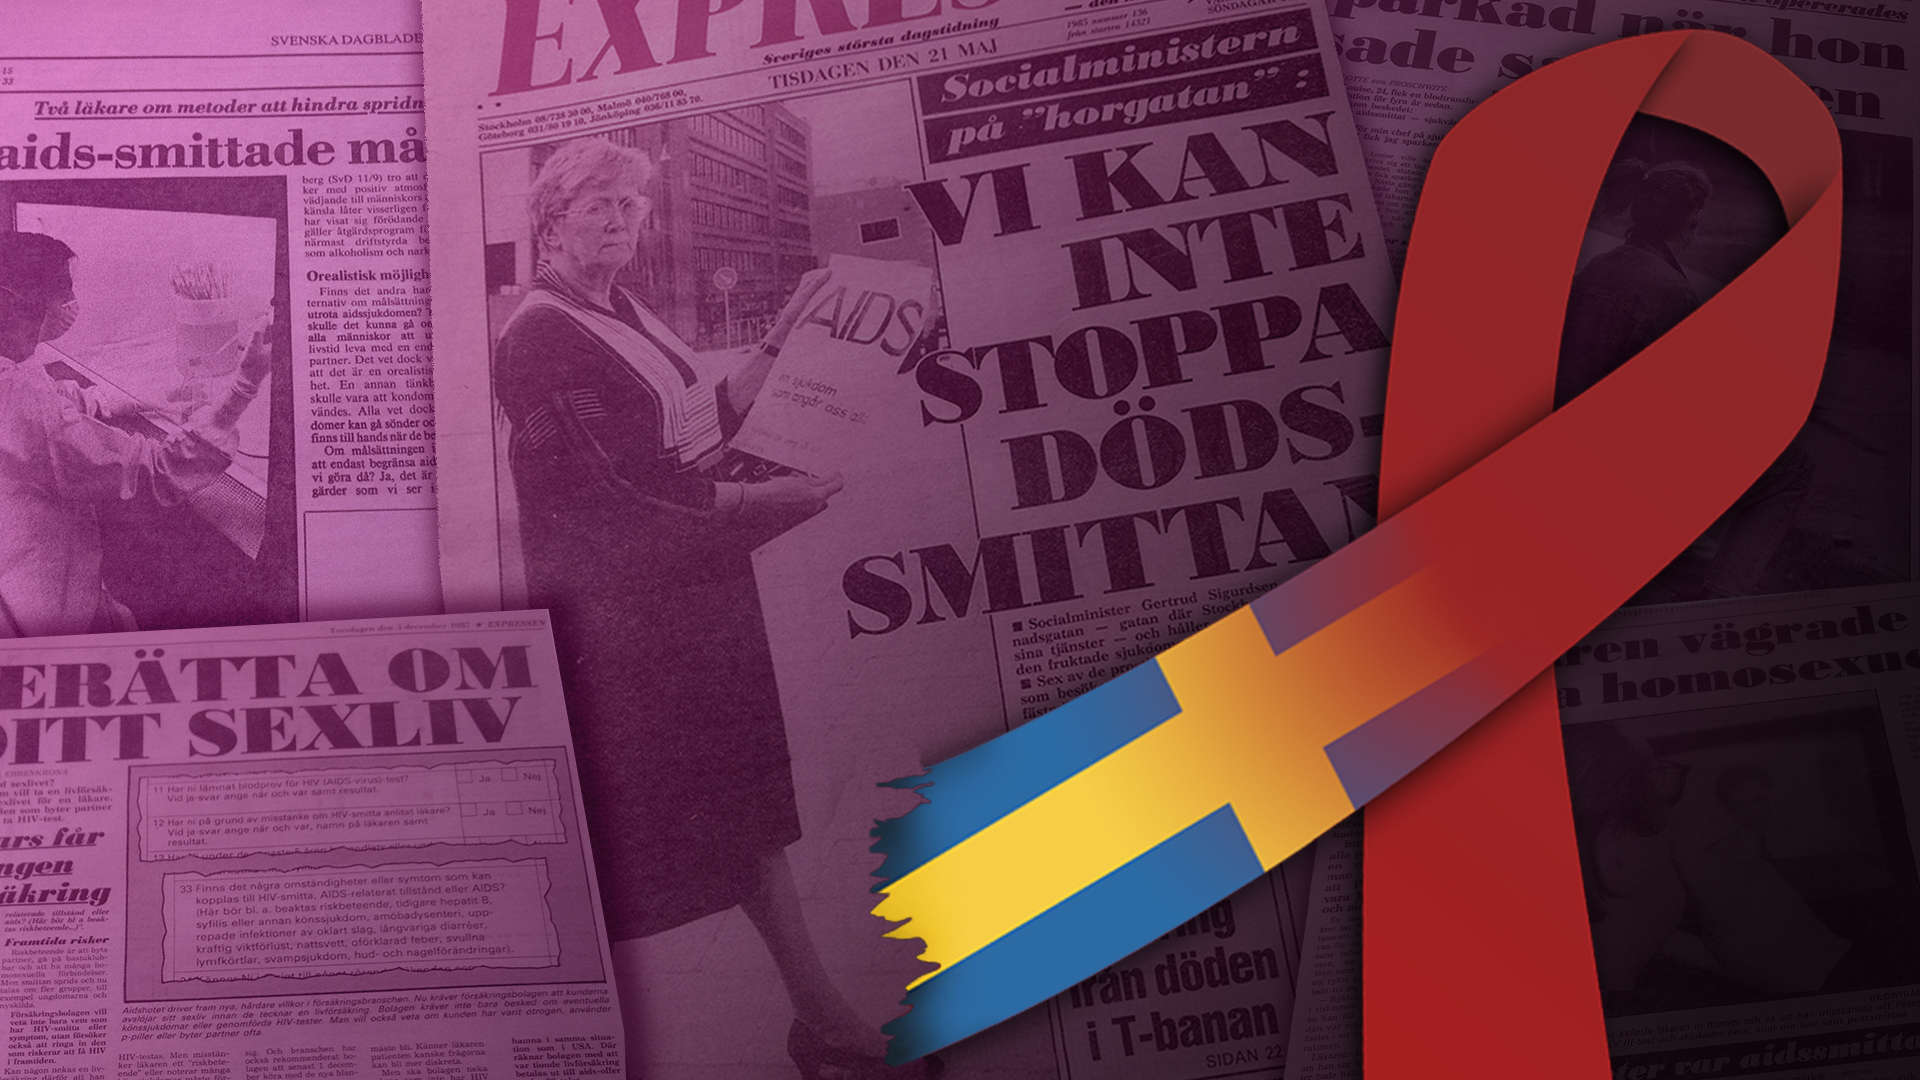 Theme - Activism, healthcare & politics - the swedish HIV and AIDS history